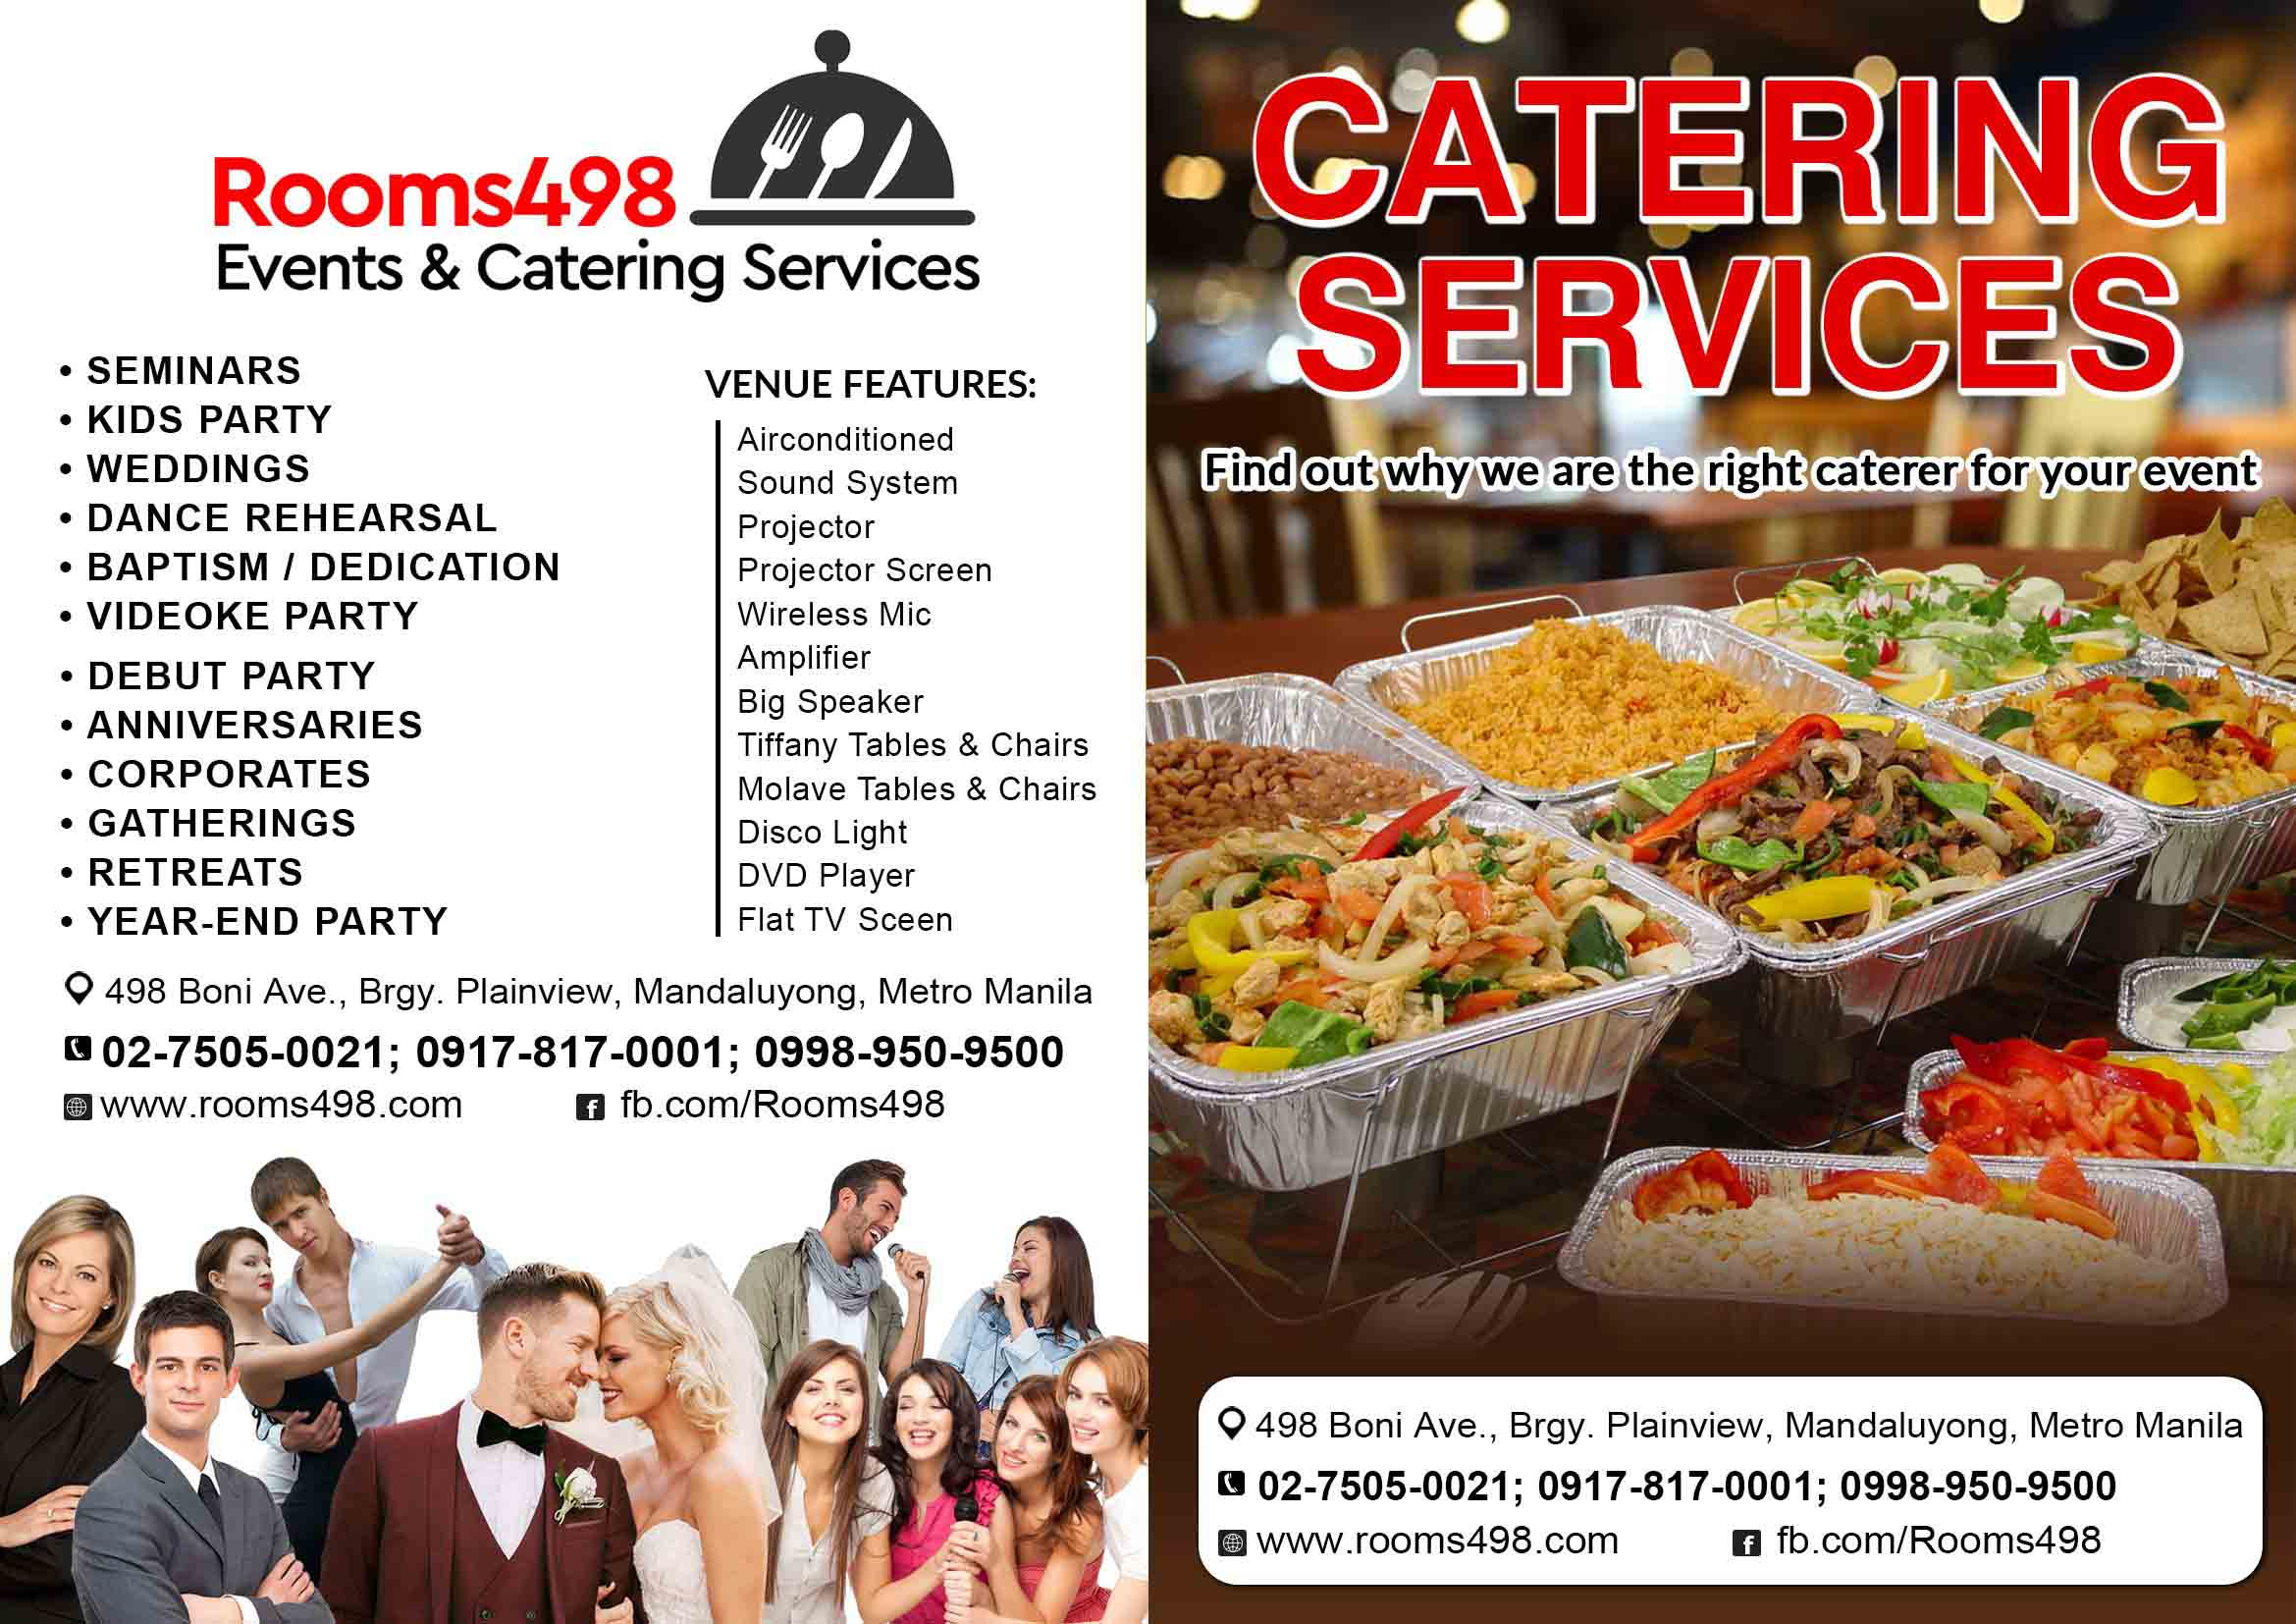 Catering Services rooms498.com